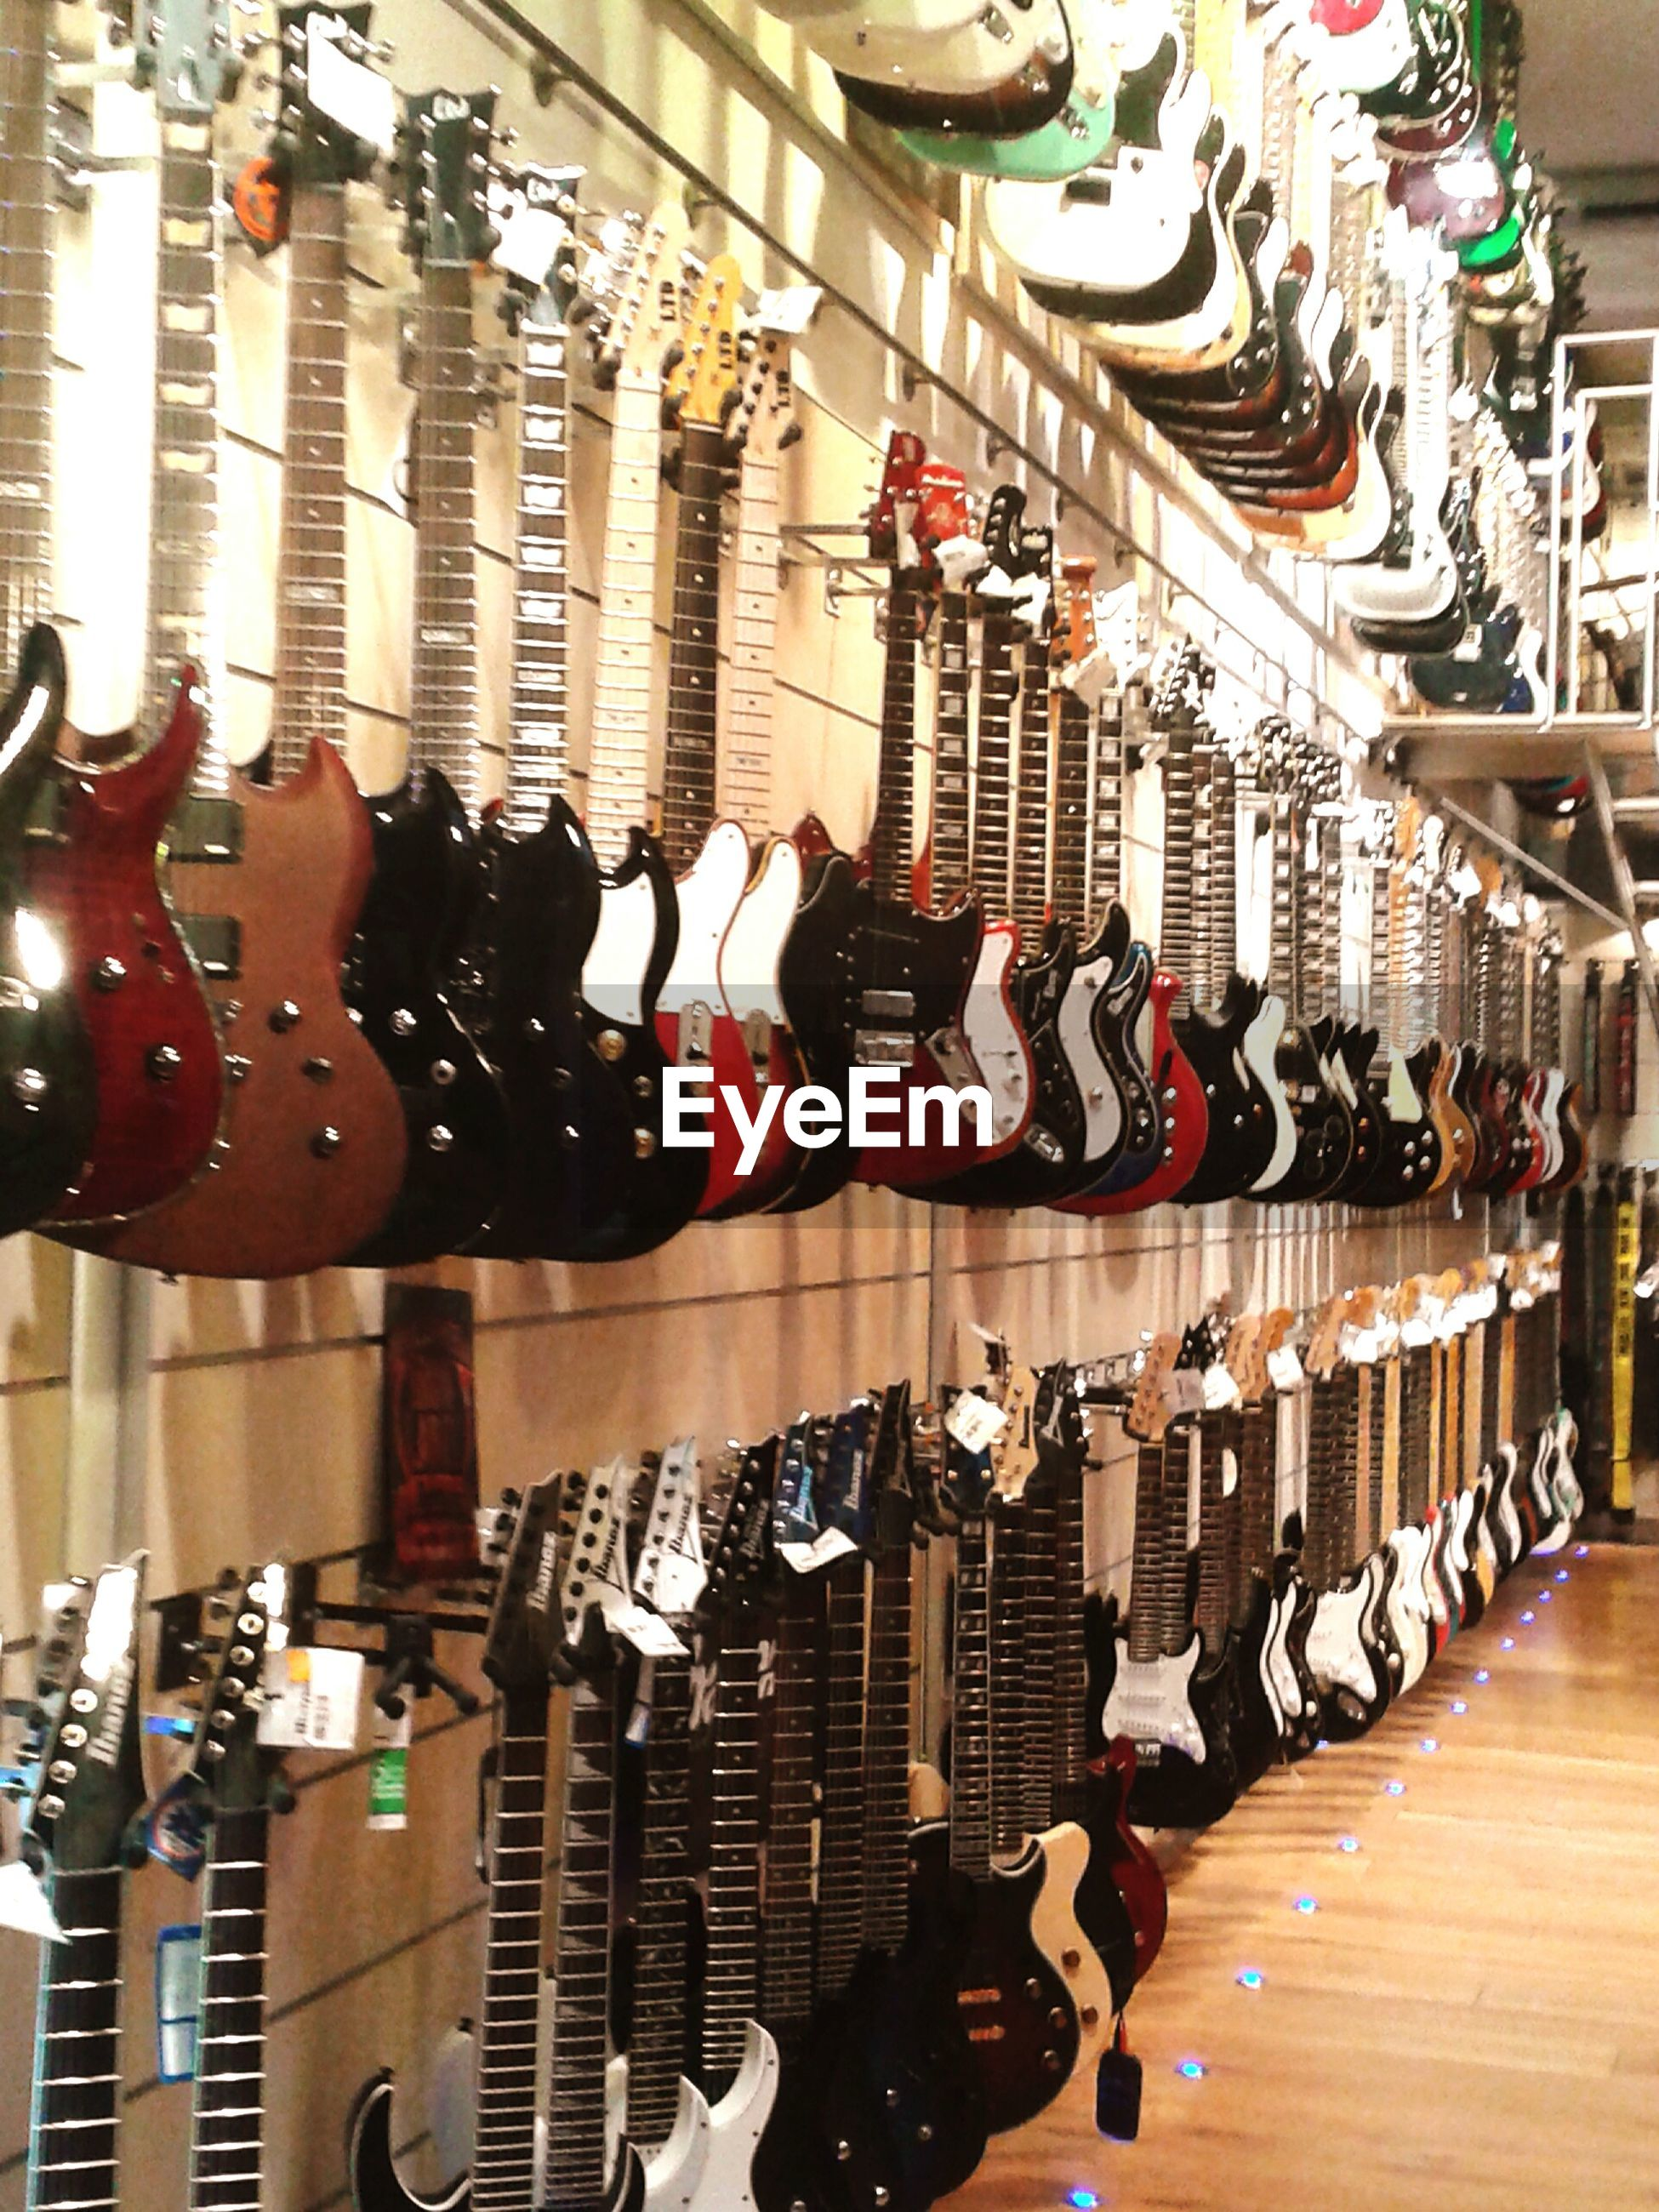 indoors, large group of objects, in a row, retail, variation, choice, abundance, arrangement, order, for sale, store, shopping, market stall, repetition, market, collection, hanging, side by side, large group of people